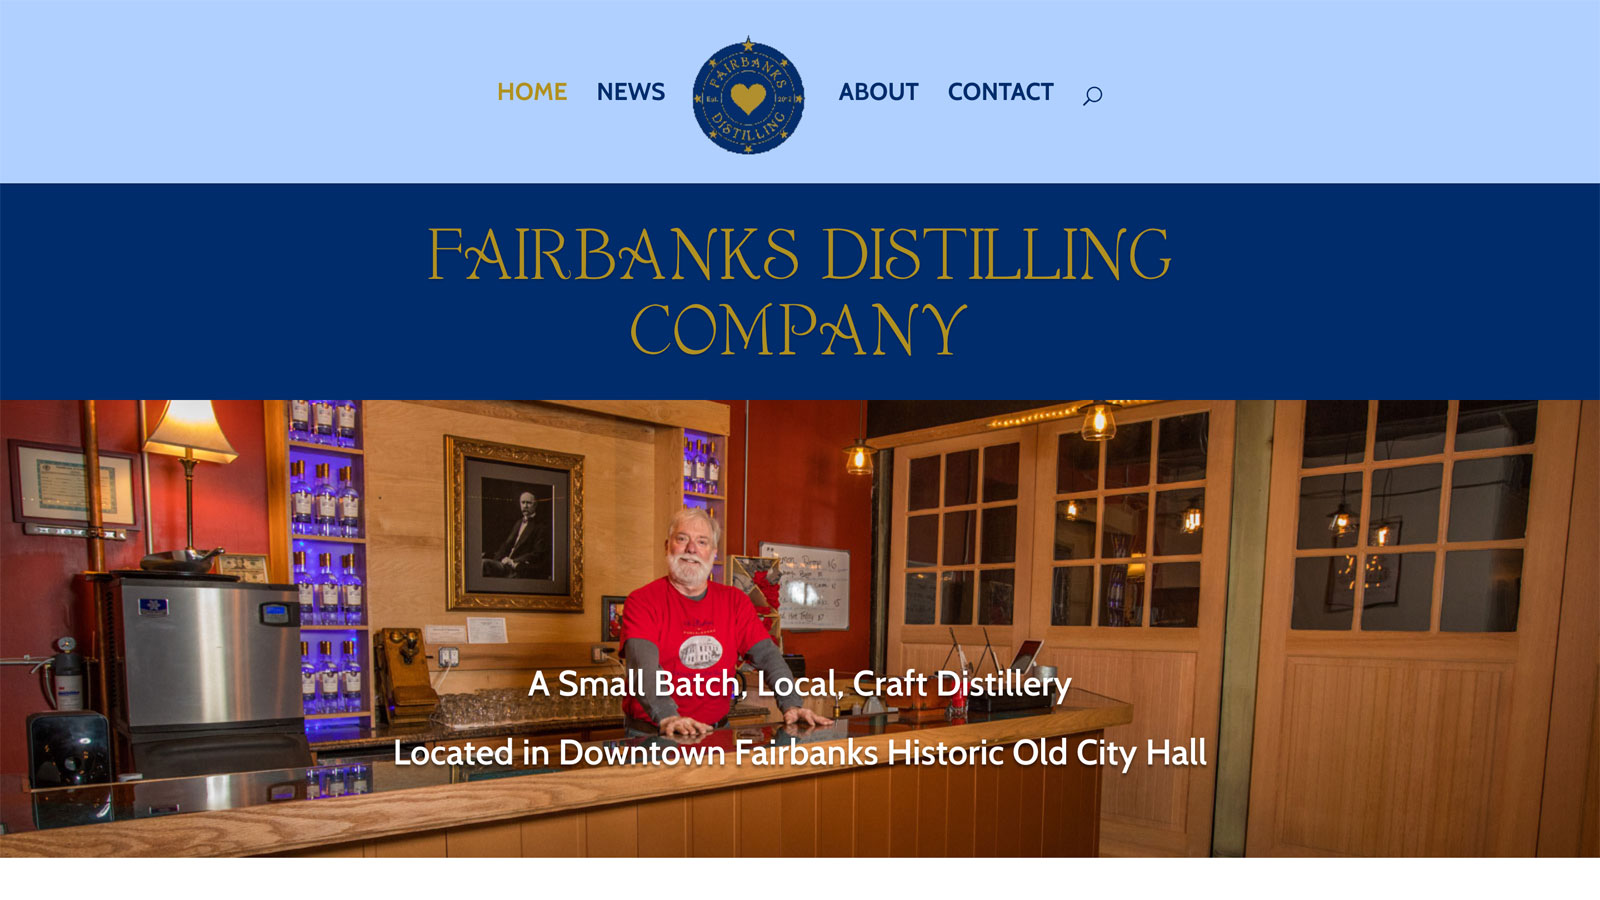 Fairbanks-Distilling-Company